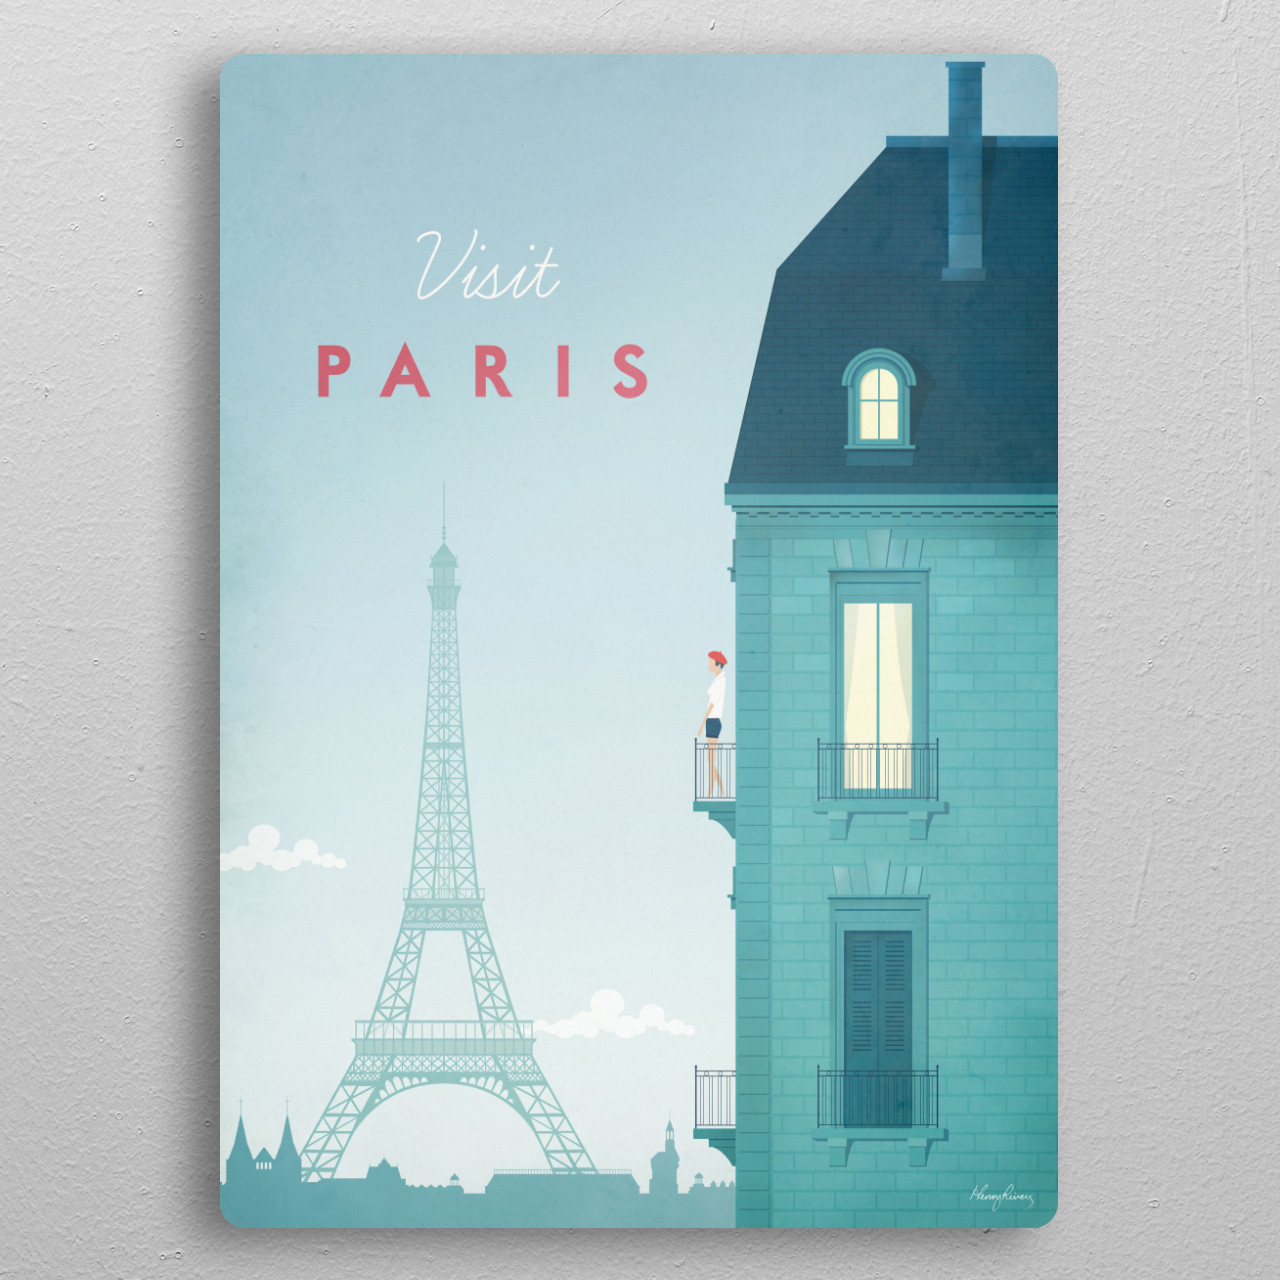 Paris pocket-size metal print from Black box